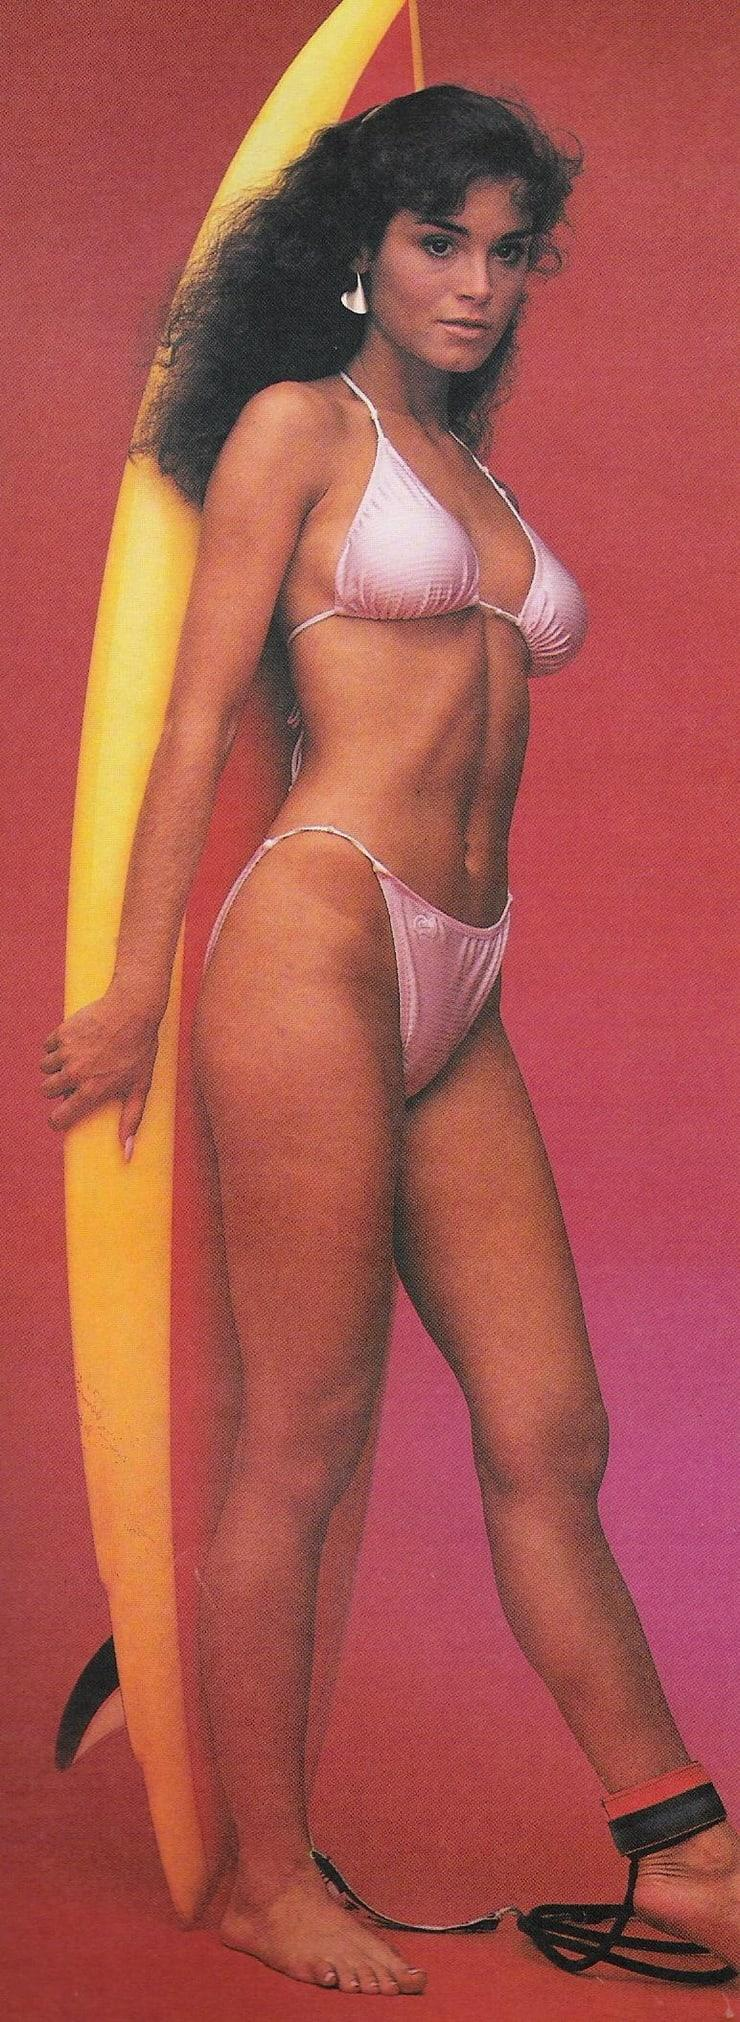 Betsy Russell hot look pics